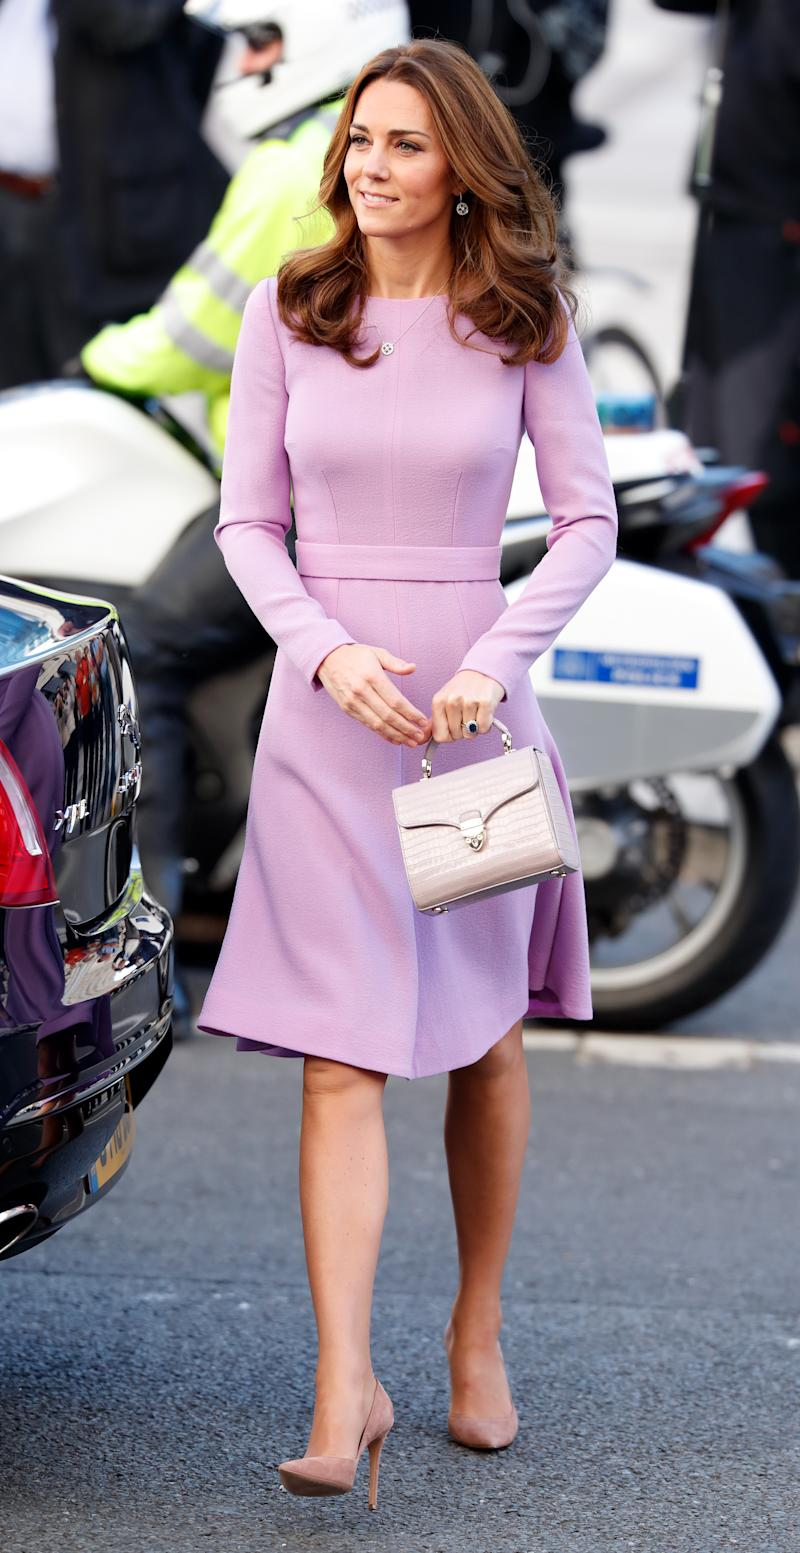 The Duchess of Cambridge opted for the Midi Mayfair Bag in lilac when she attended the Global Ministerial Mental Health Summit at London County Hall with husband Prince William in October 2018. (Getty Images)